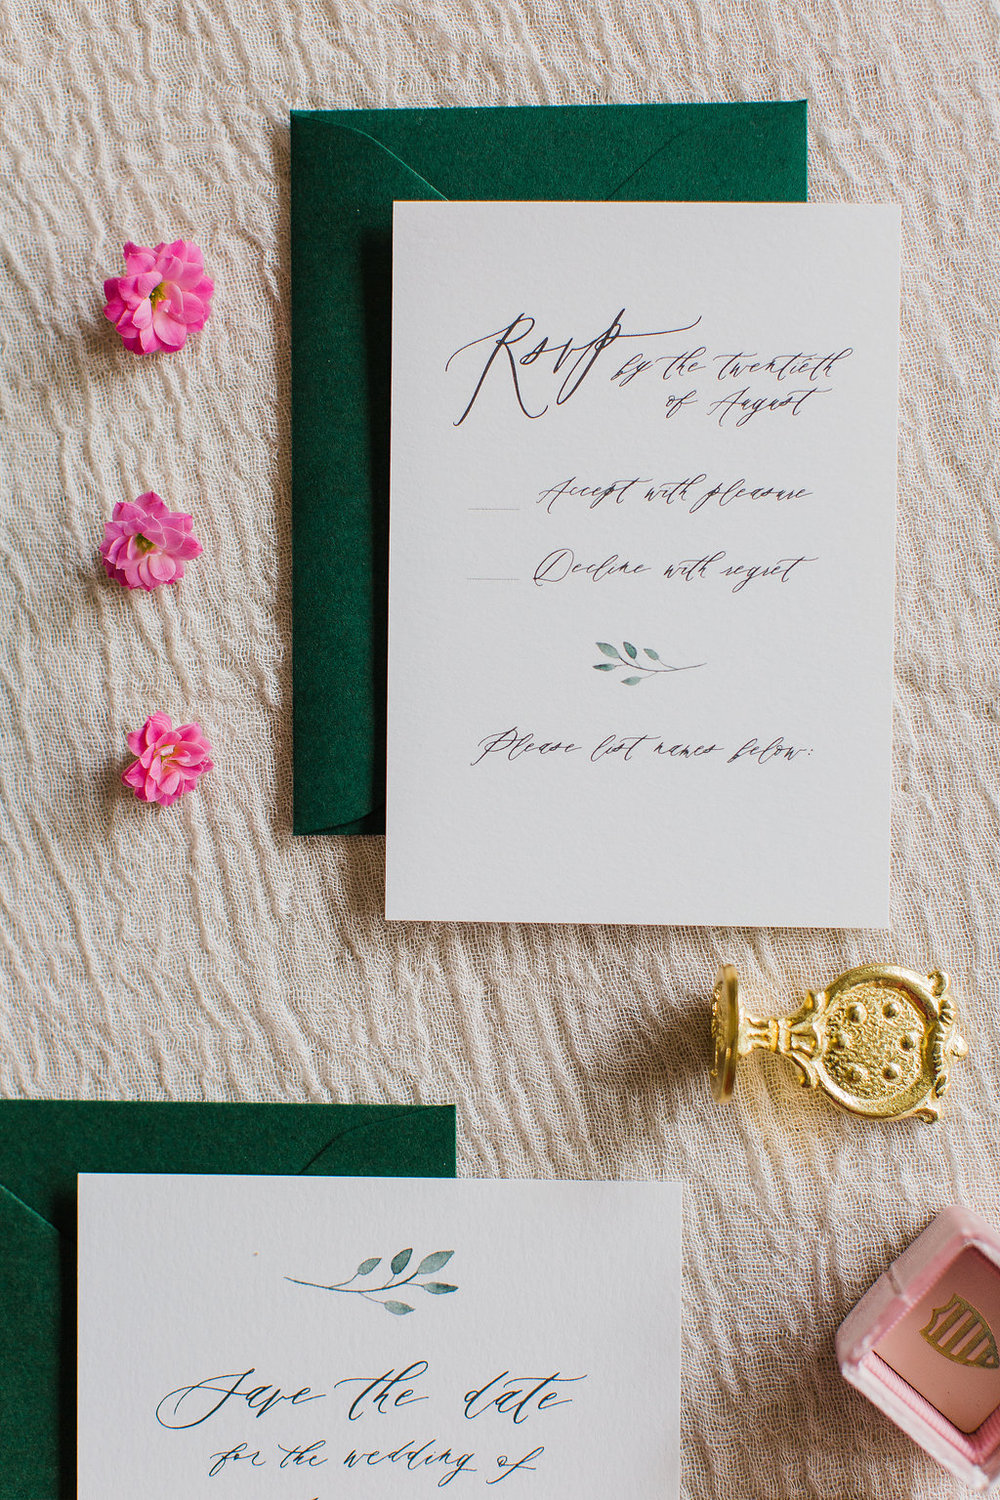 Merilee Hand Painted Calligraphy Wedding Invitation Feathered Heart PrintsFHP-65.jpg